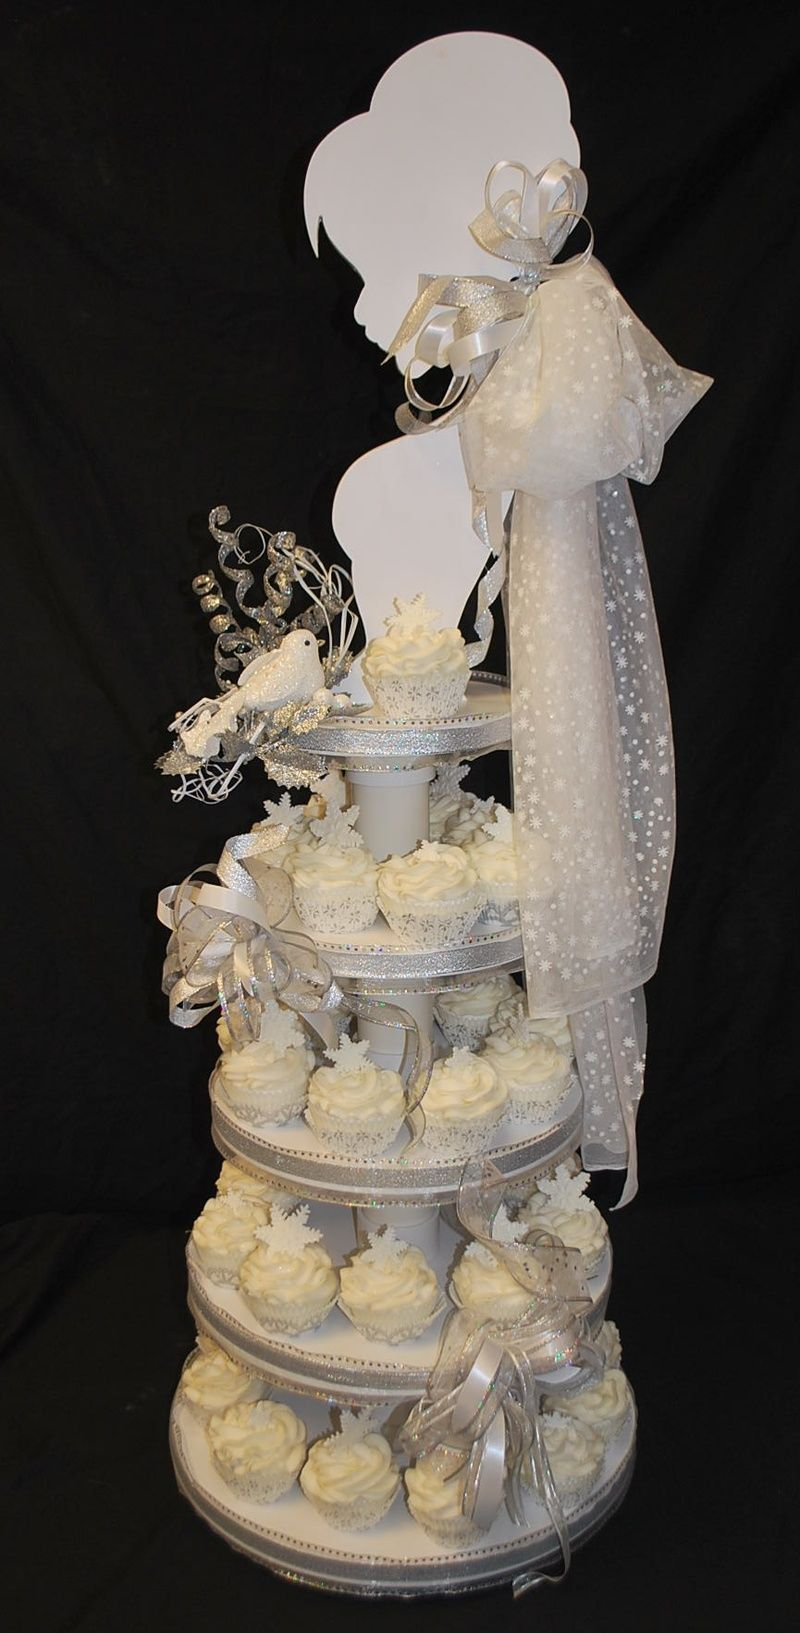 bride cupcake tower how cute with the snowflakes if i was having a winter wedding